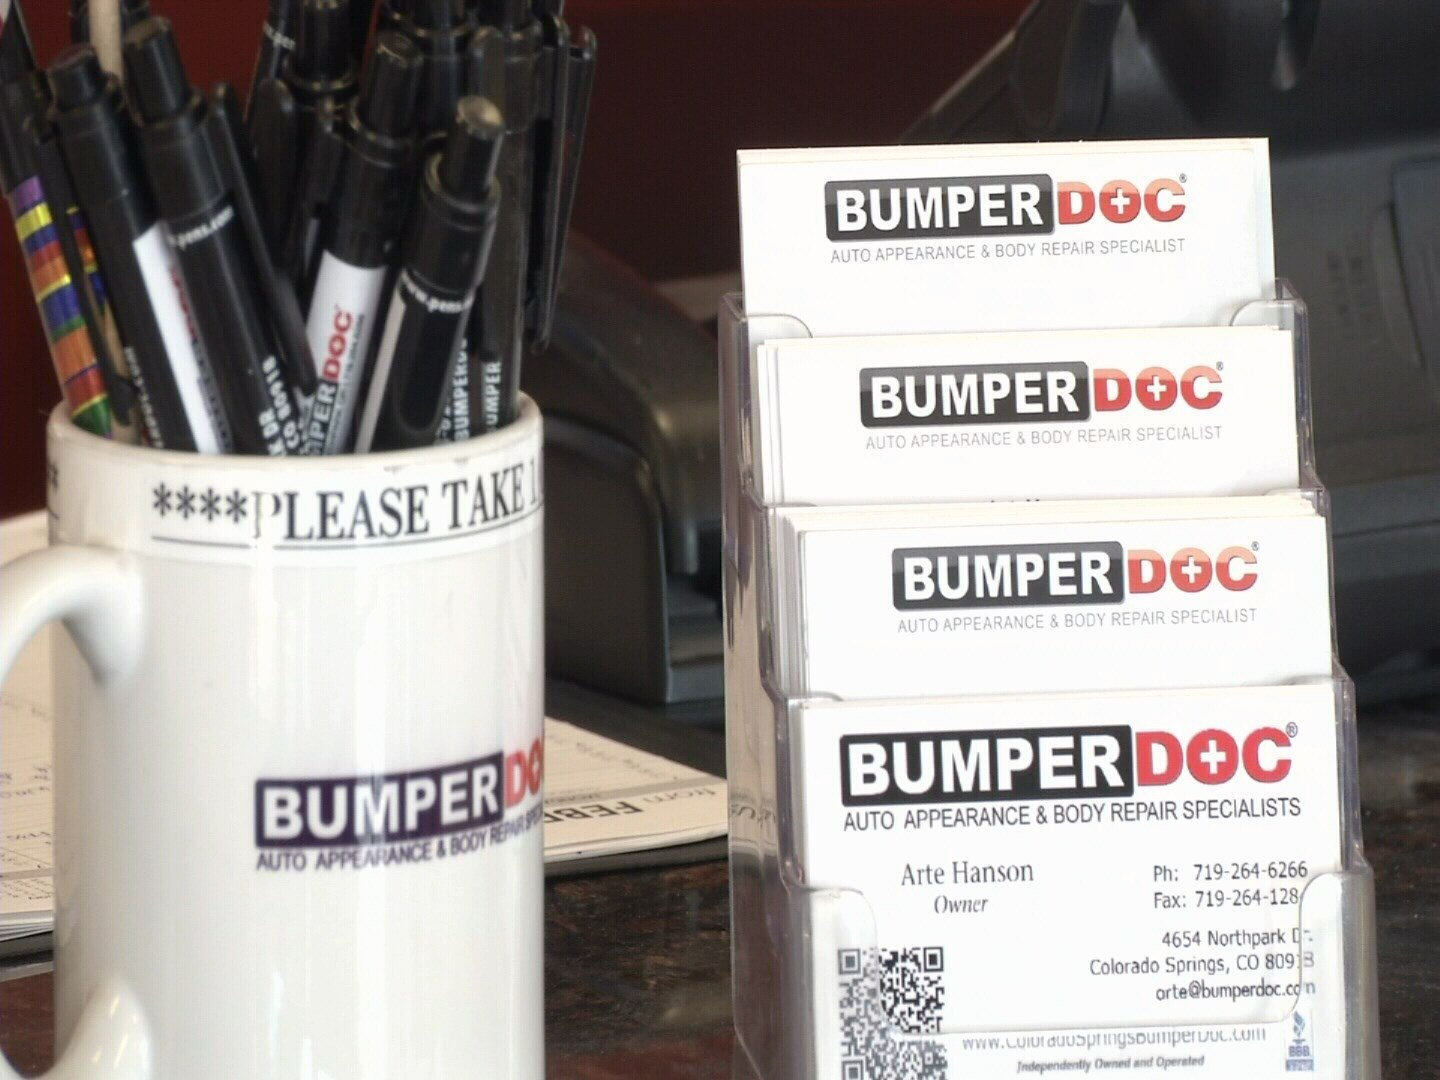 Business cards used to impersonate a local auto repairman. (KOAA)